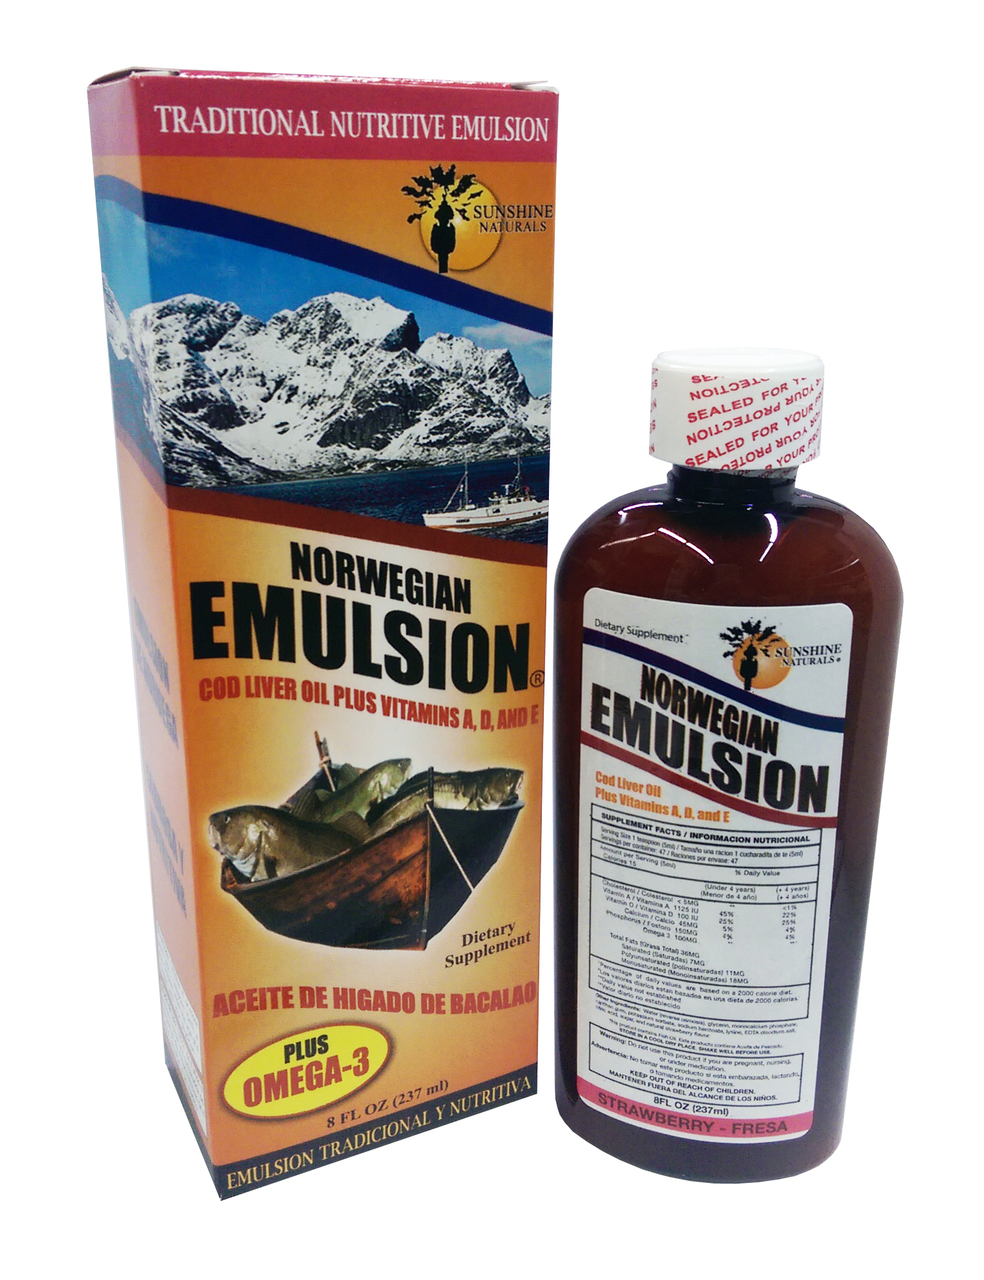 Norwegian Emulsion Cod Liver Oil + Omega 3 Strawberry Flavor